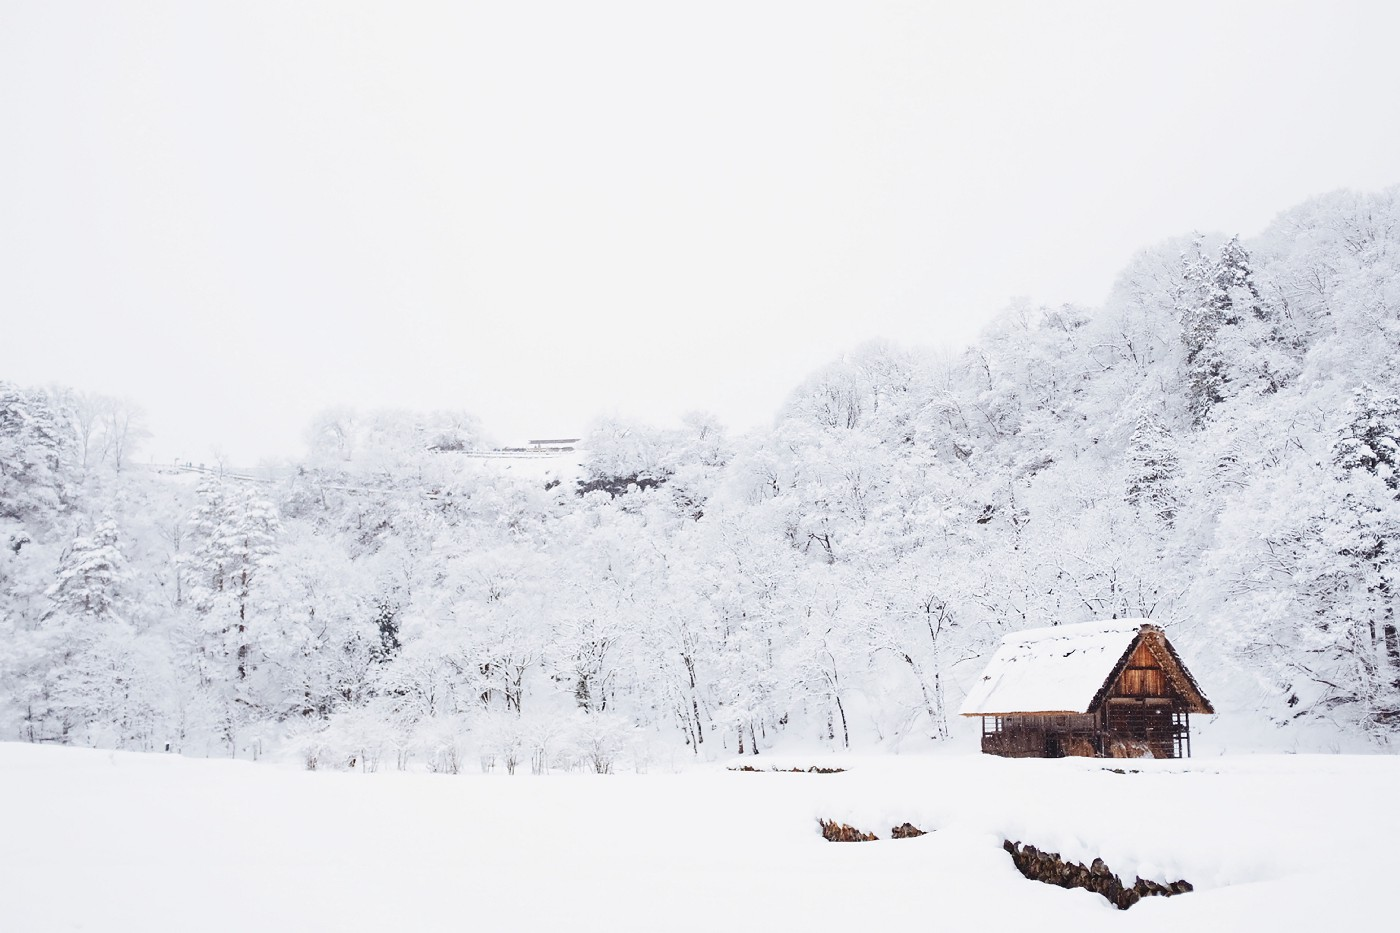 A snow covered cabin in a snow covered clearing in front of a snow covered forest